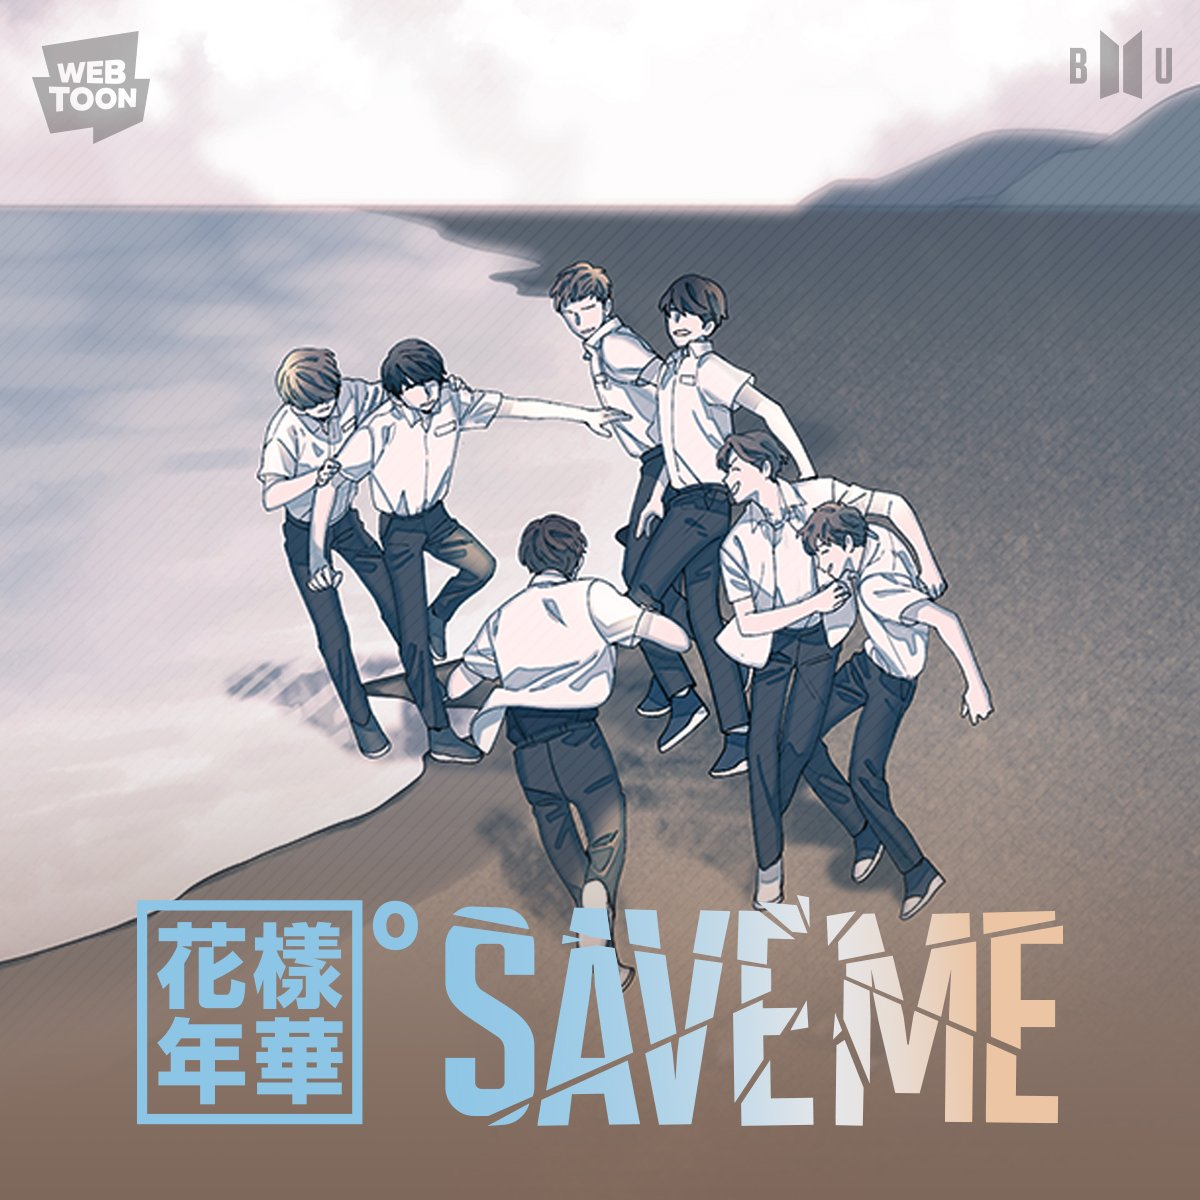 Link Bts Save Me Webtoon 190117